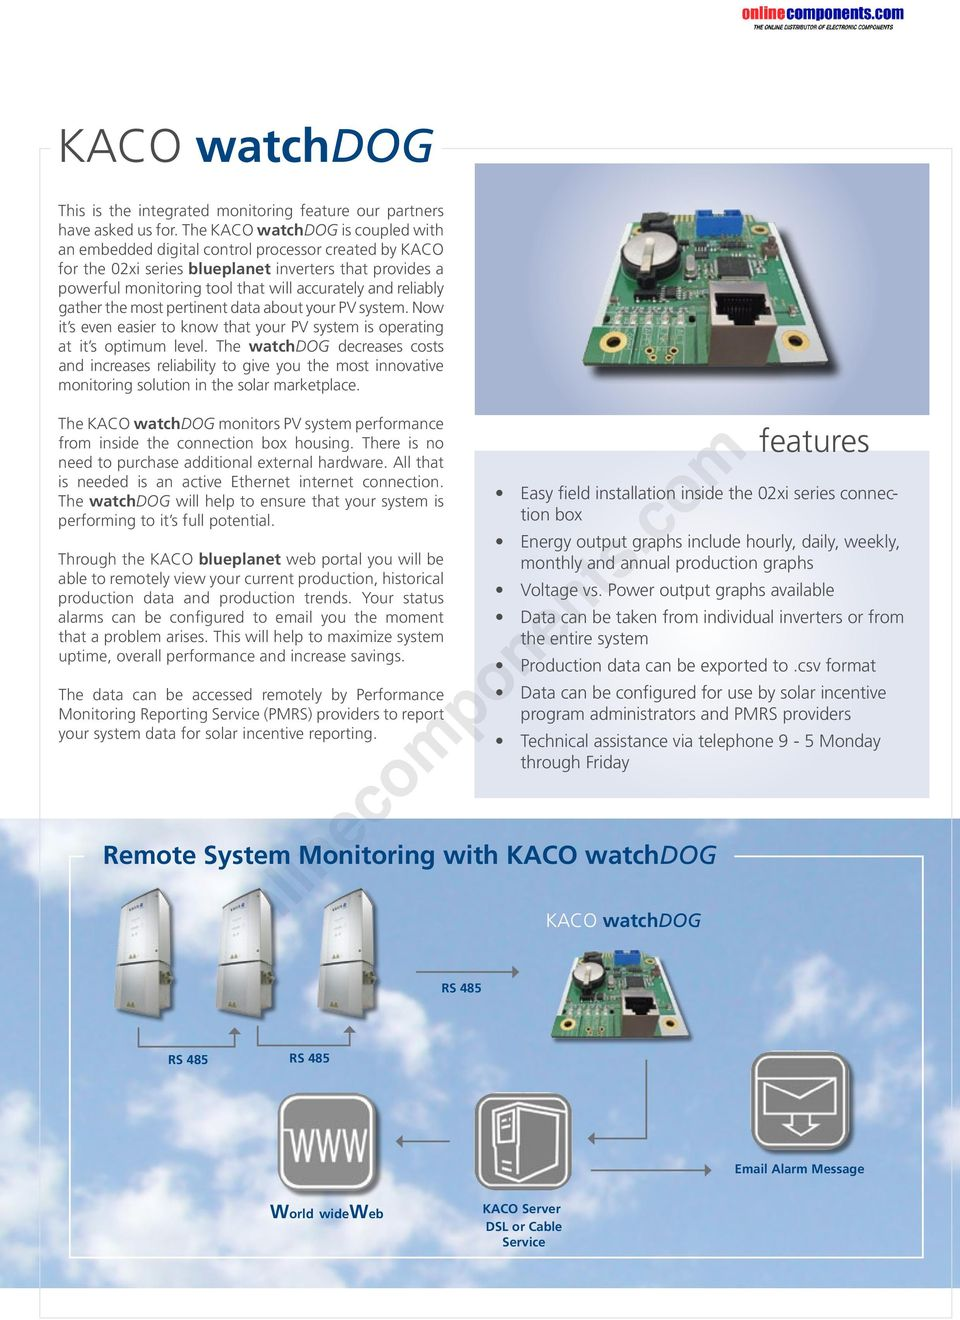 KACO-monitoring  onlinecomponents com  Integrated monitoring